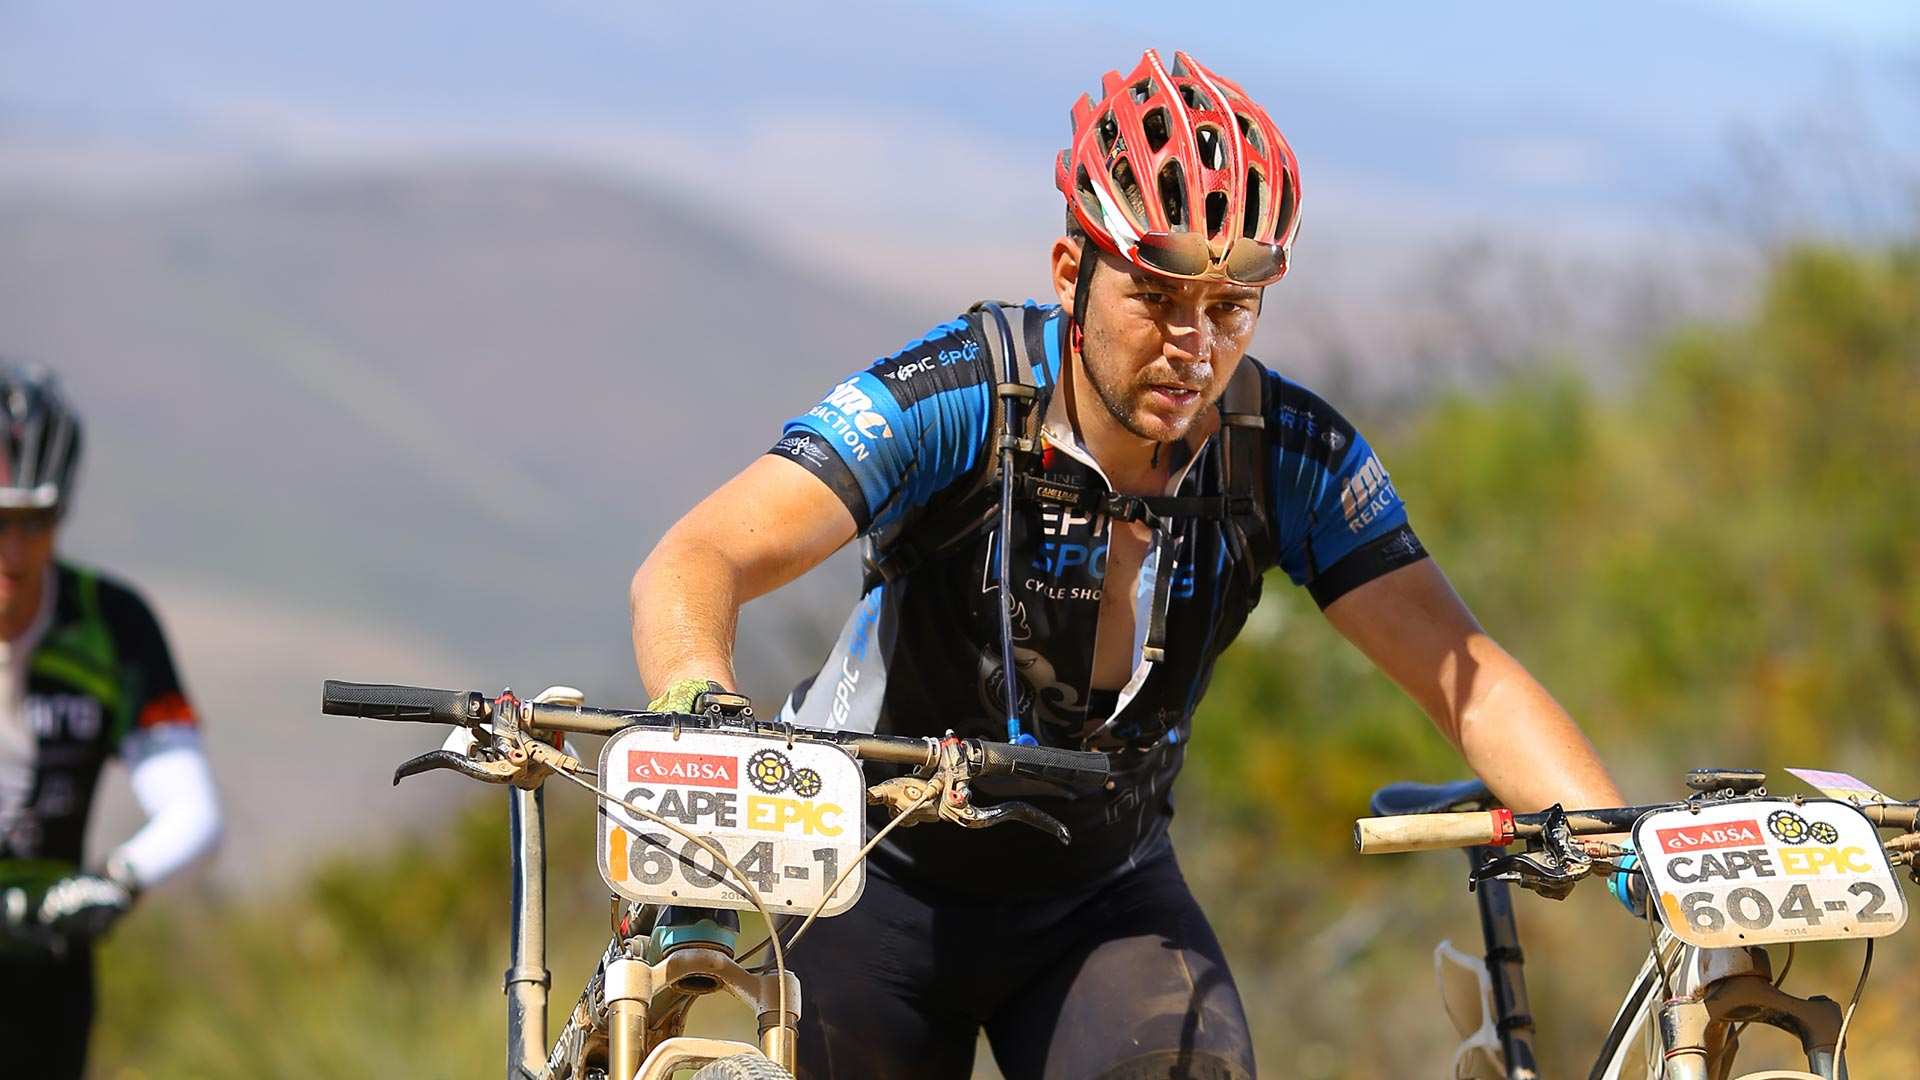 Coen van Tonder pushing two mountain bikes